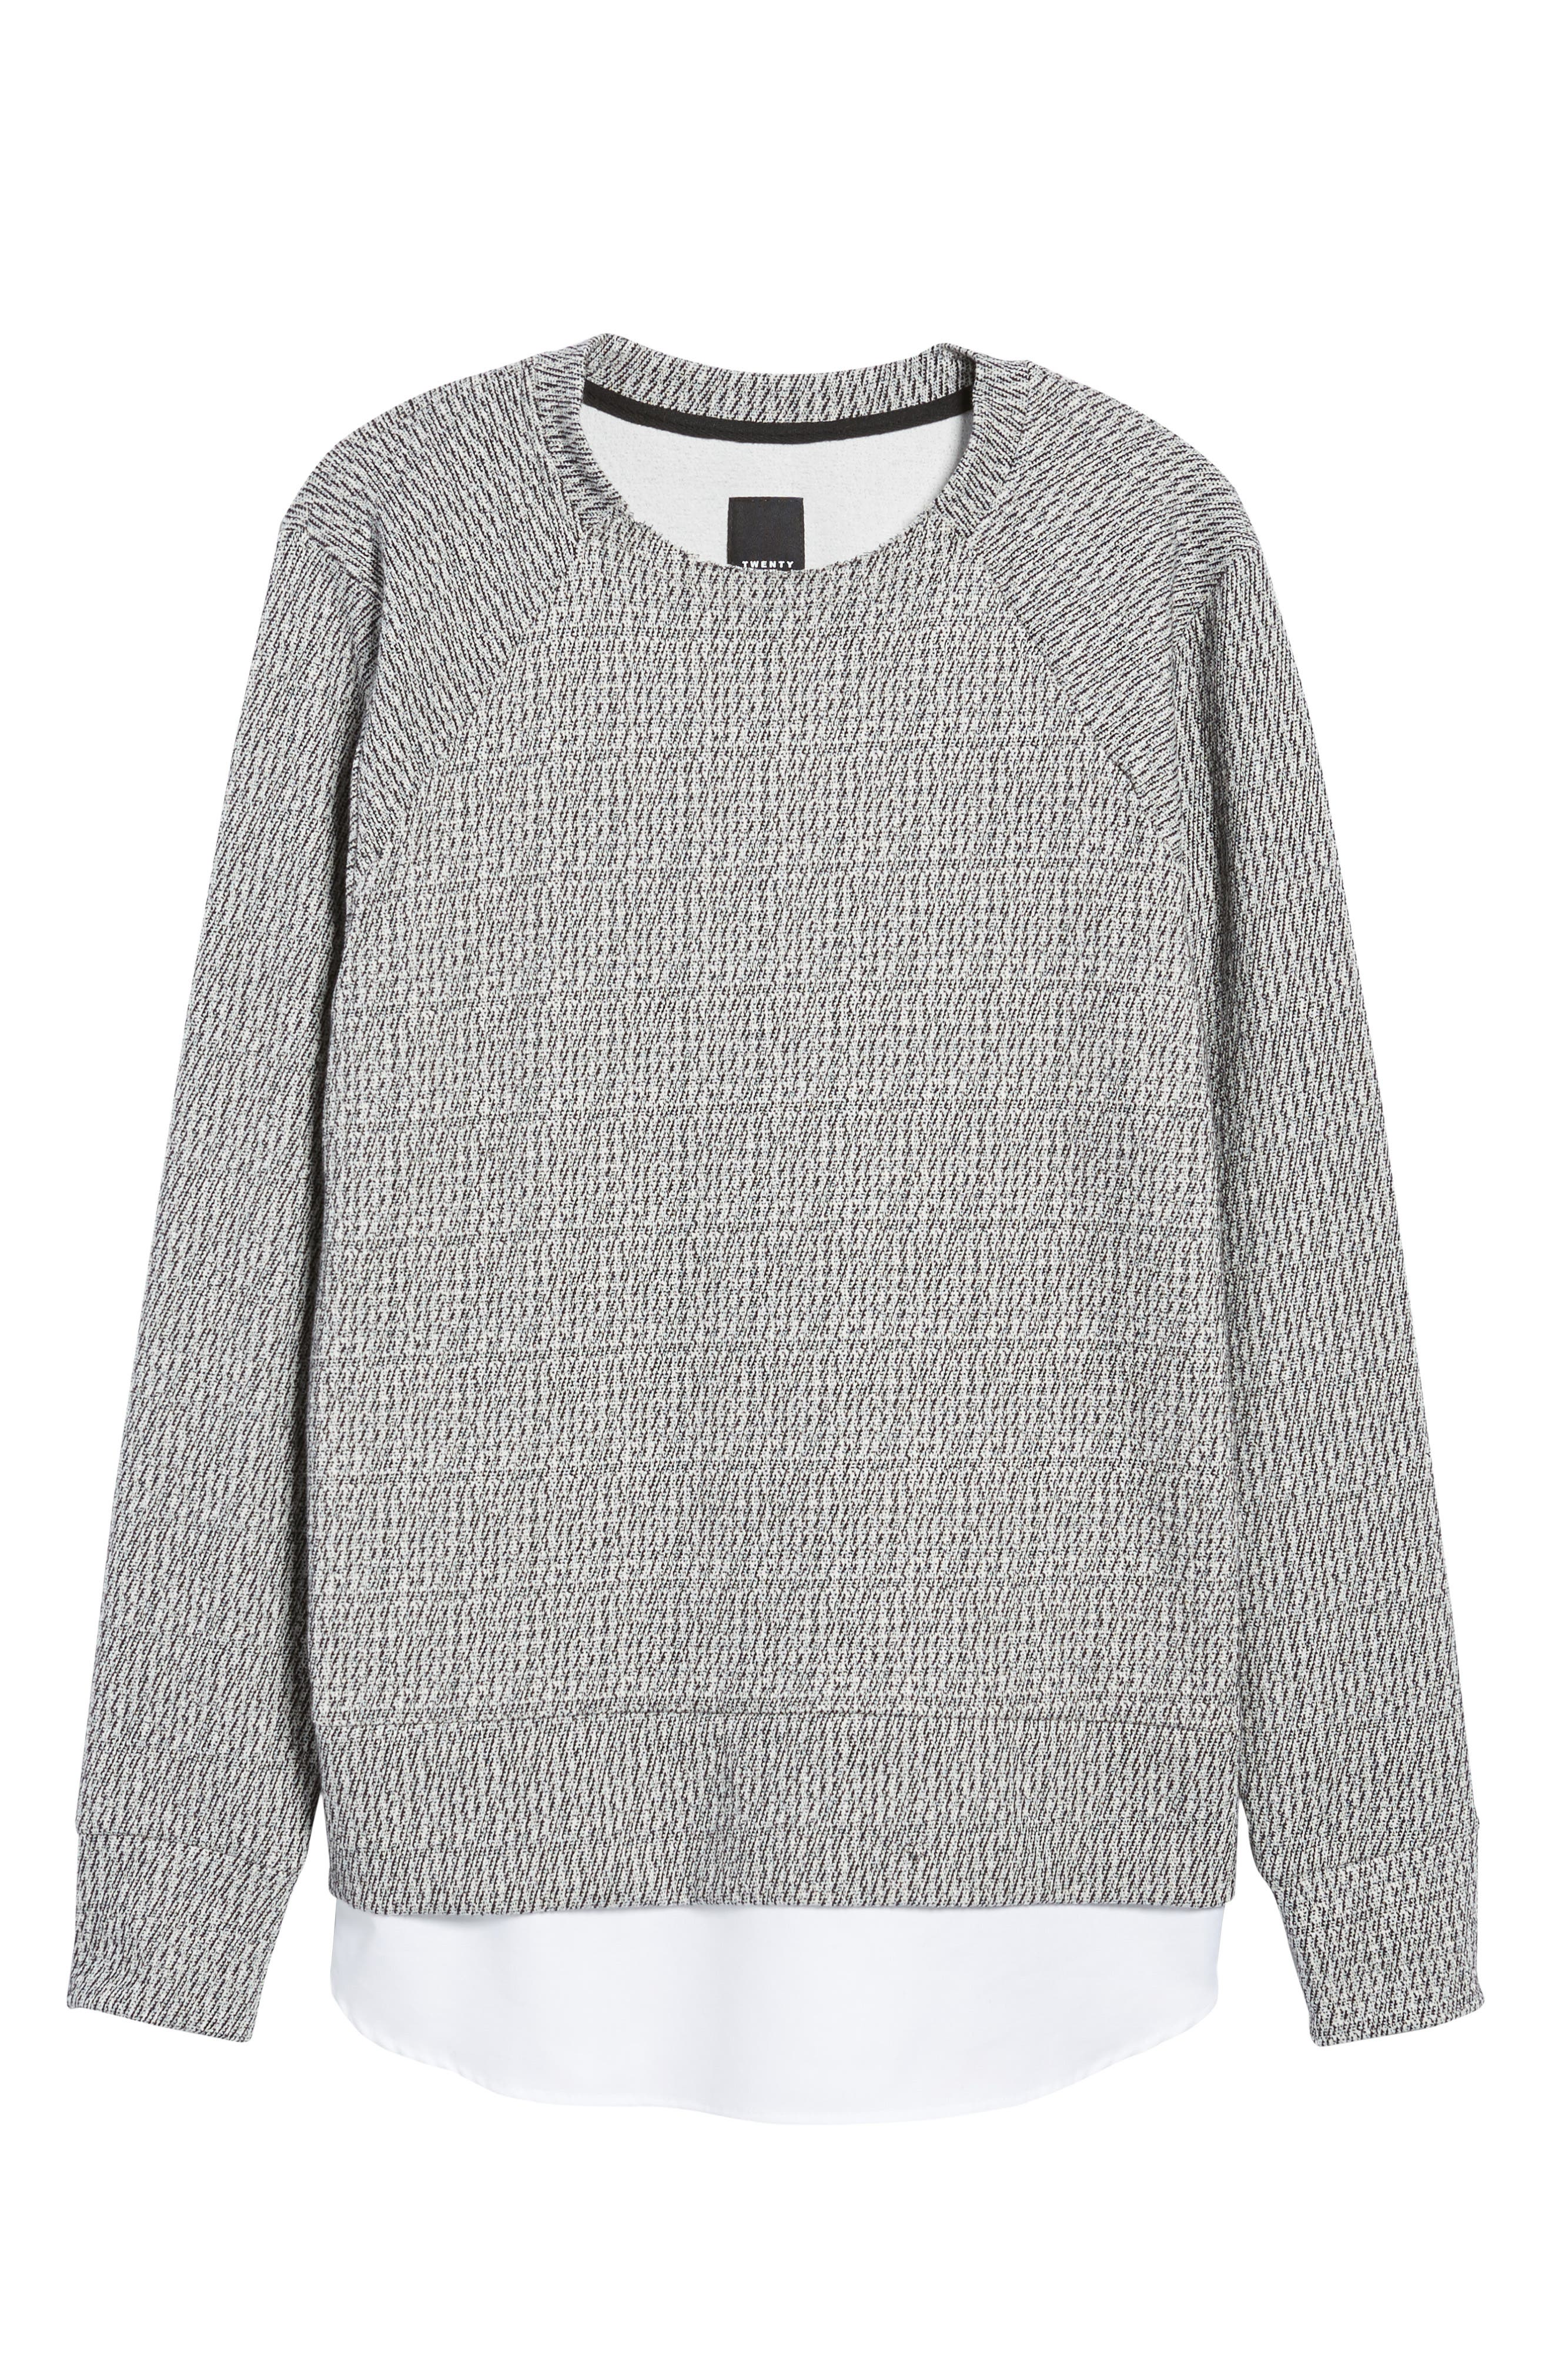 Double Layer Crewneck Sweater,                             Alternate thumbnail 6, color,                             020